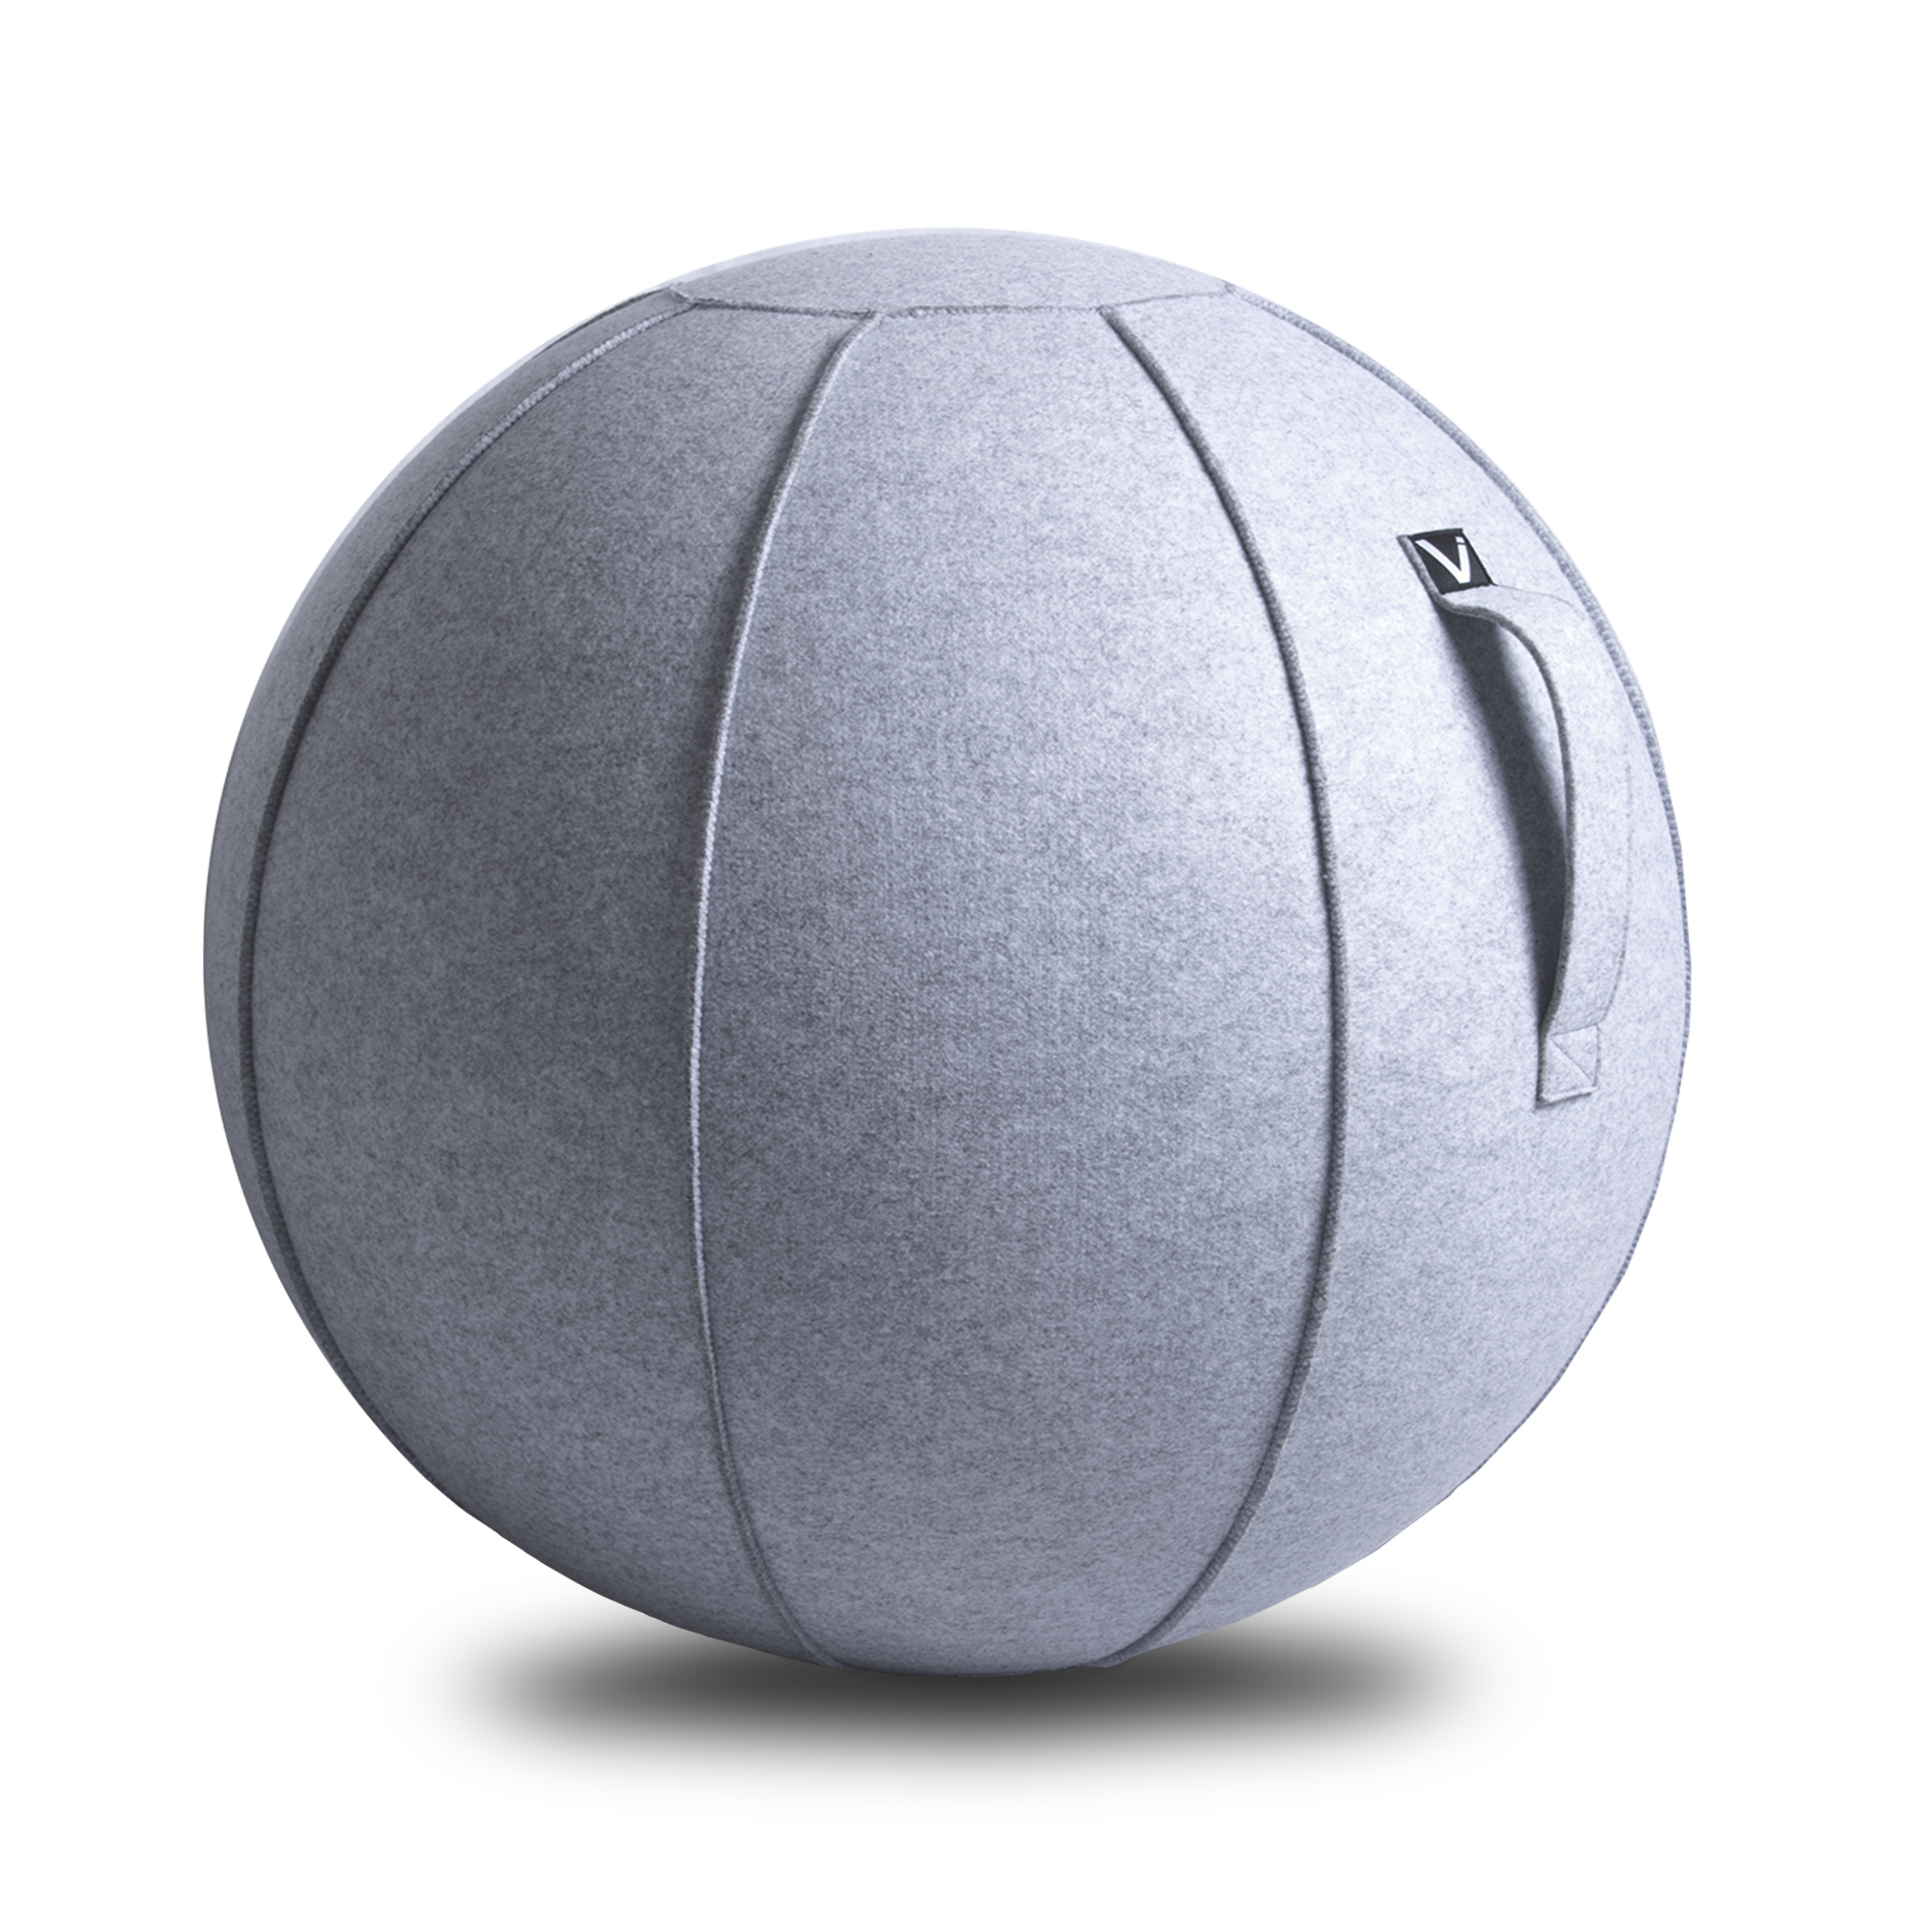 Ball Chair Office Chair Swiss Ball Pilates Physio Ball Exercise Ball Fintess Balls Pilates Fitness Chair 65cm Luno In Marble By Vivora